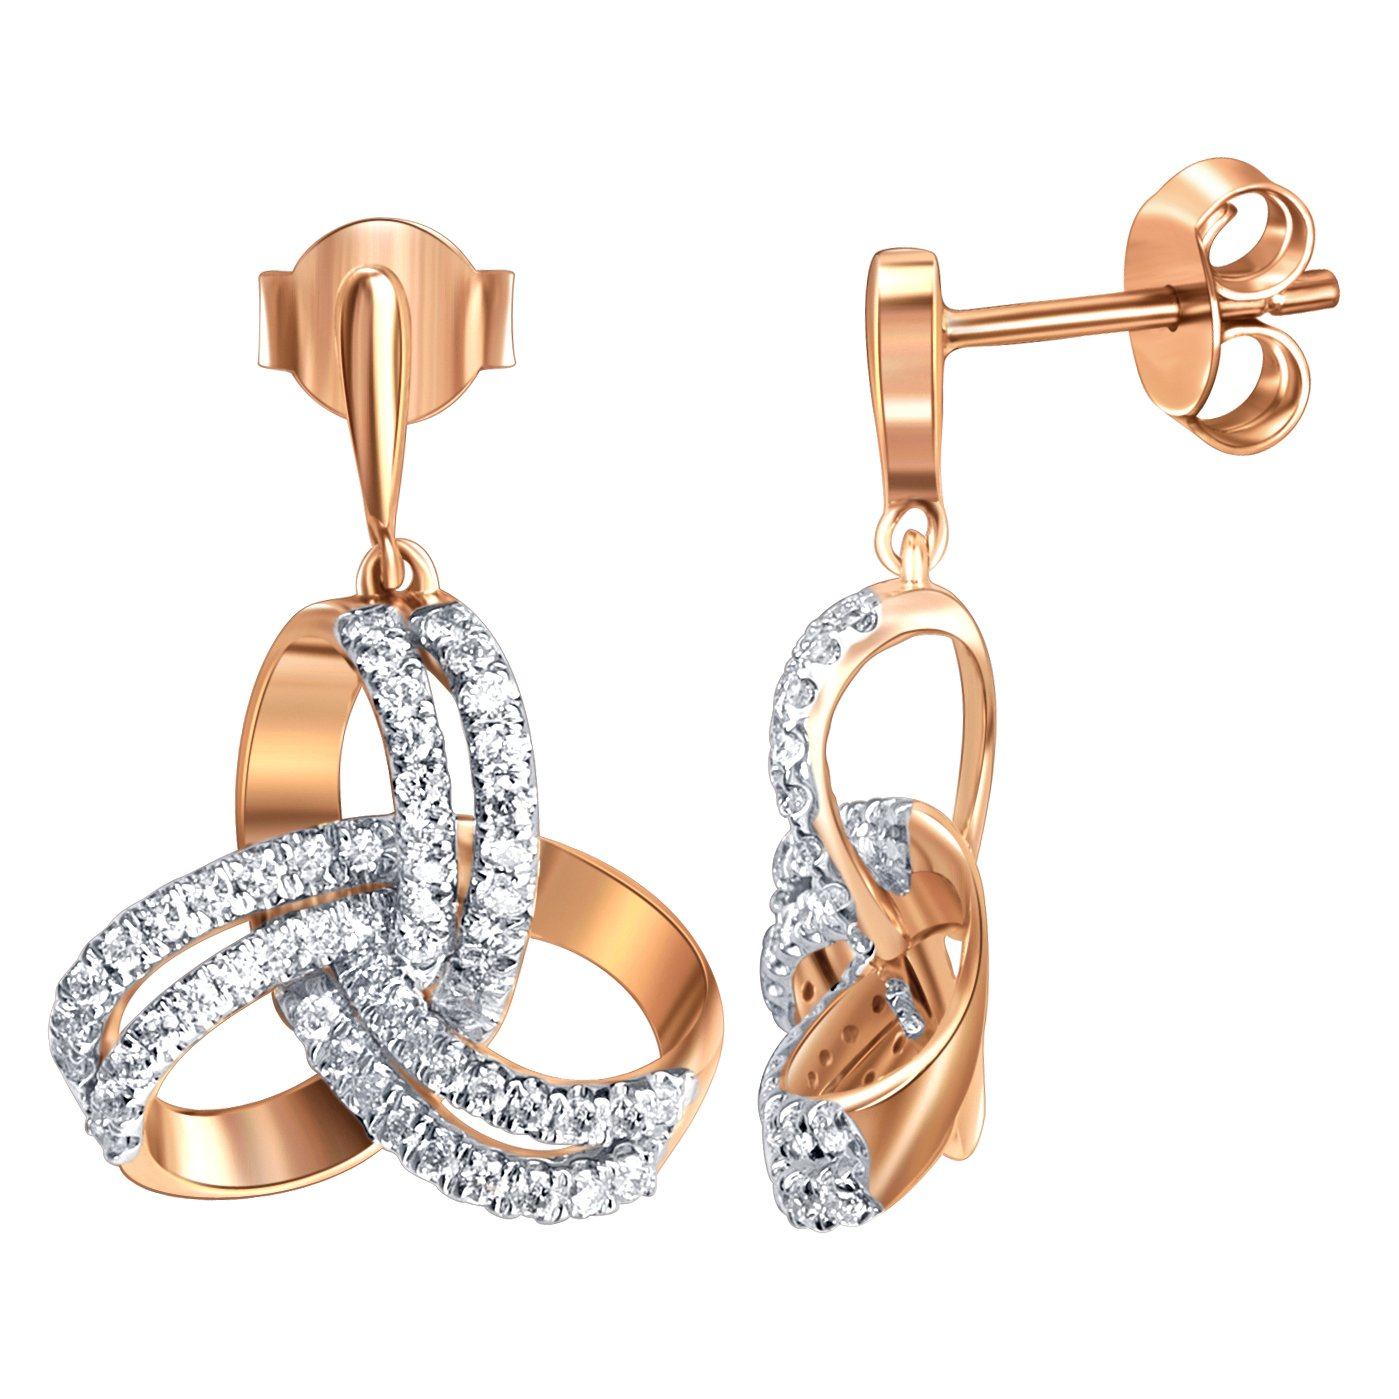 Earrings, Rare, Christmas Gift Jewel Ivy 9K Pink Gold Earring with 0.66 Ct Diamond I2-I3 (GHI) Fine Jewelry, Best For Gifting Wife, Girlfriend, Friend